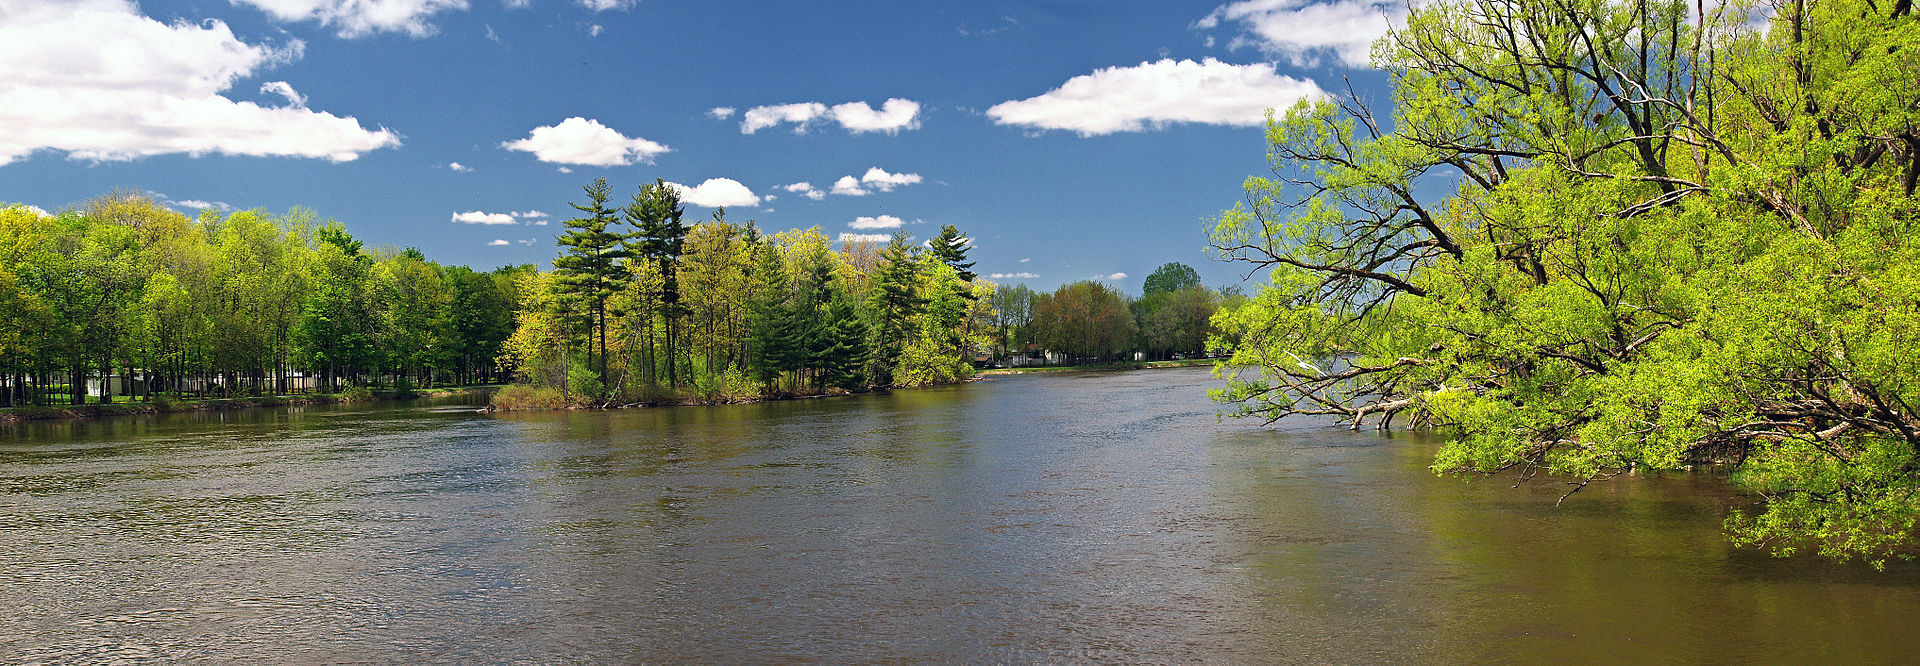 the Rivière-des-Mille-Îles or thousand islands river in the suburbs of Montreal, Laval